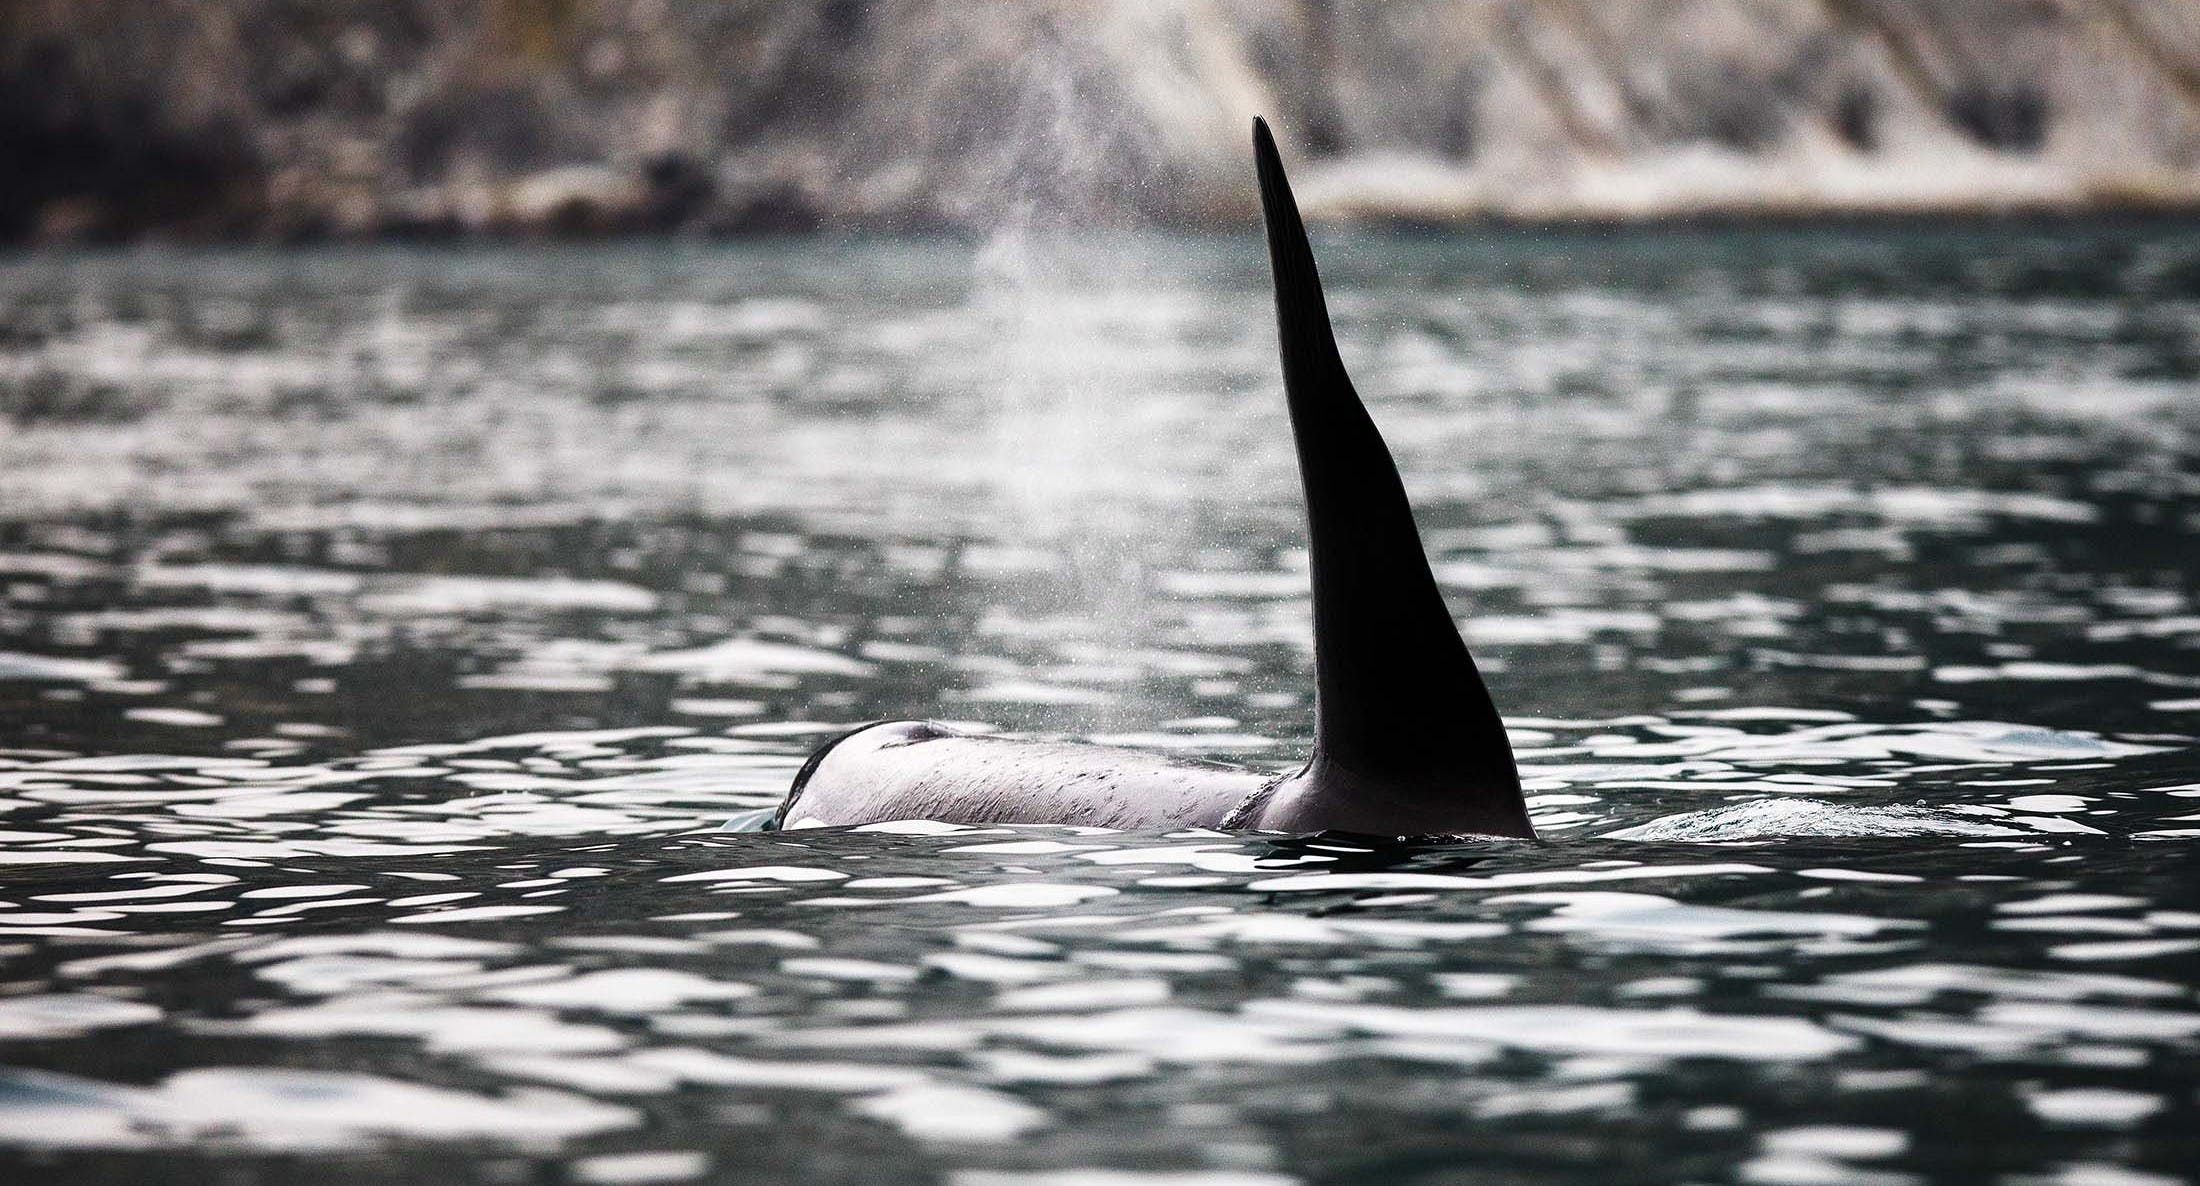 Killer whales in the Russian Far East